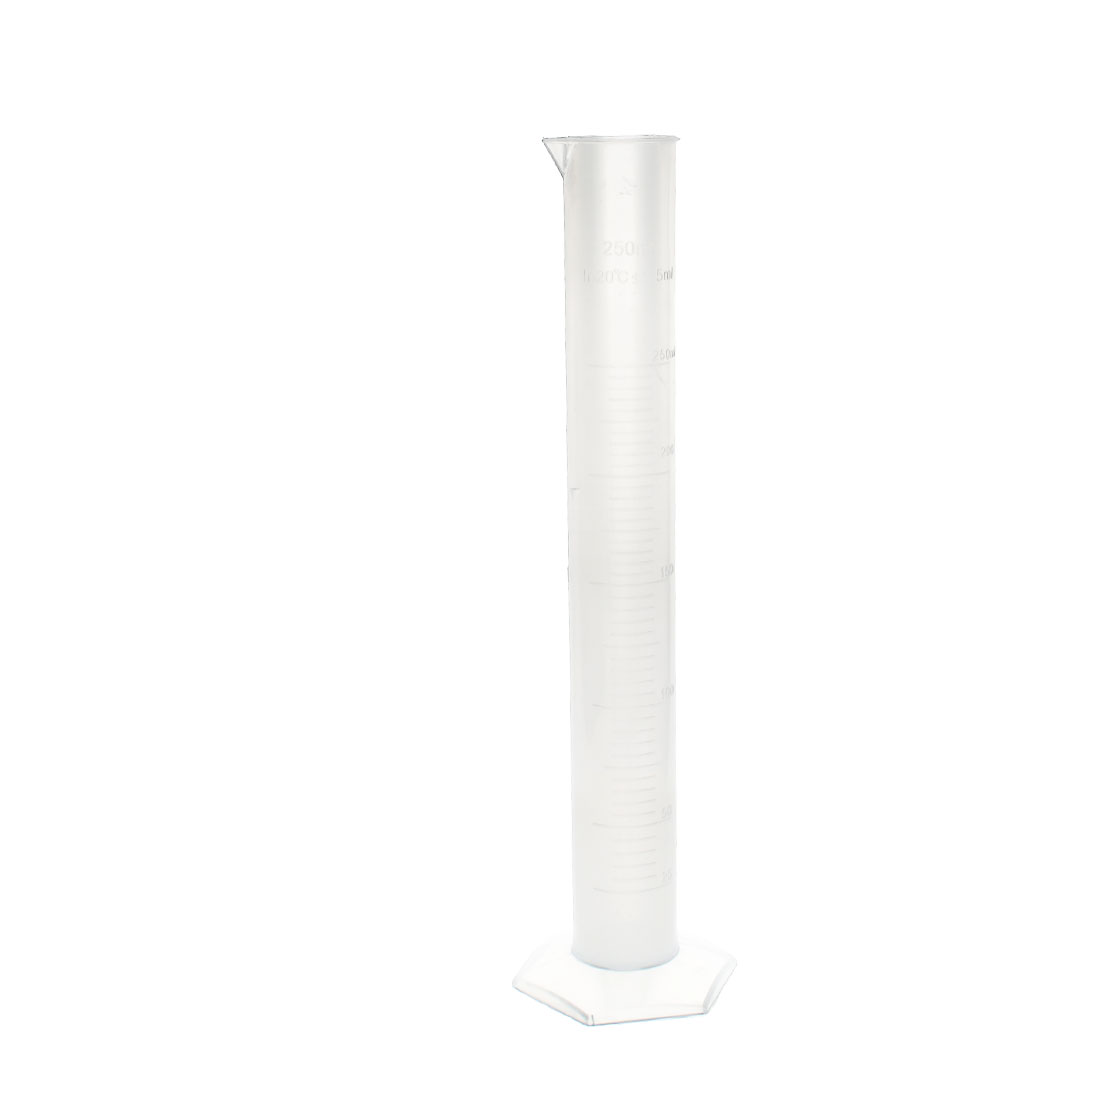 Lab Laboratory Test 250ml Capacity 2.5ml Tolerance Transparent Plastic Graduated Cylinder Measuring Cup 32cm High